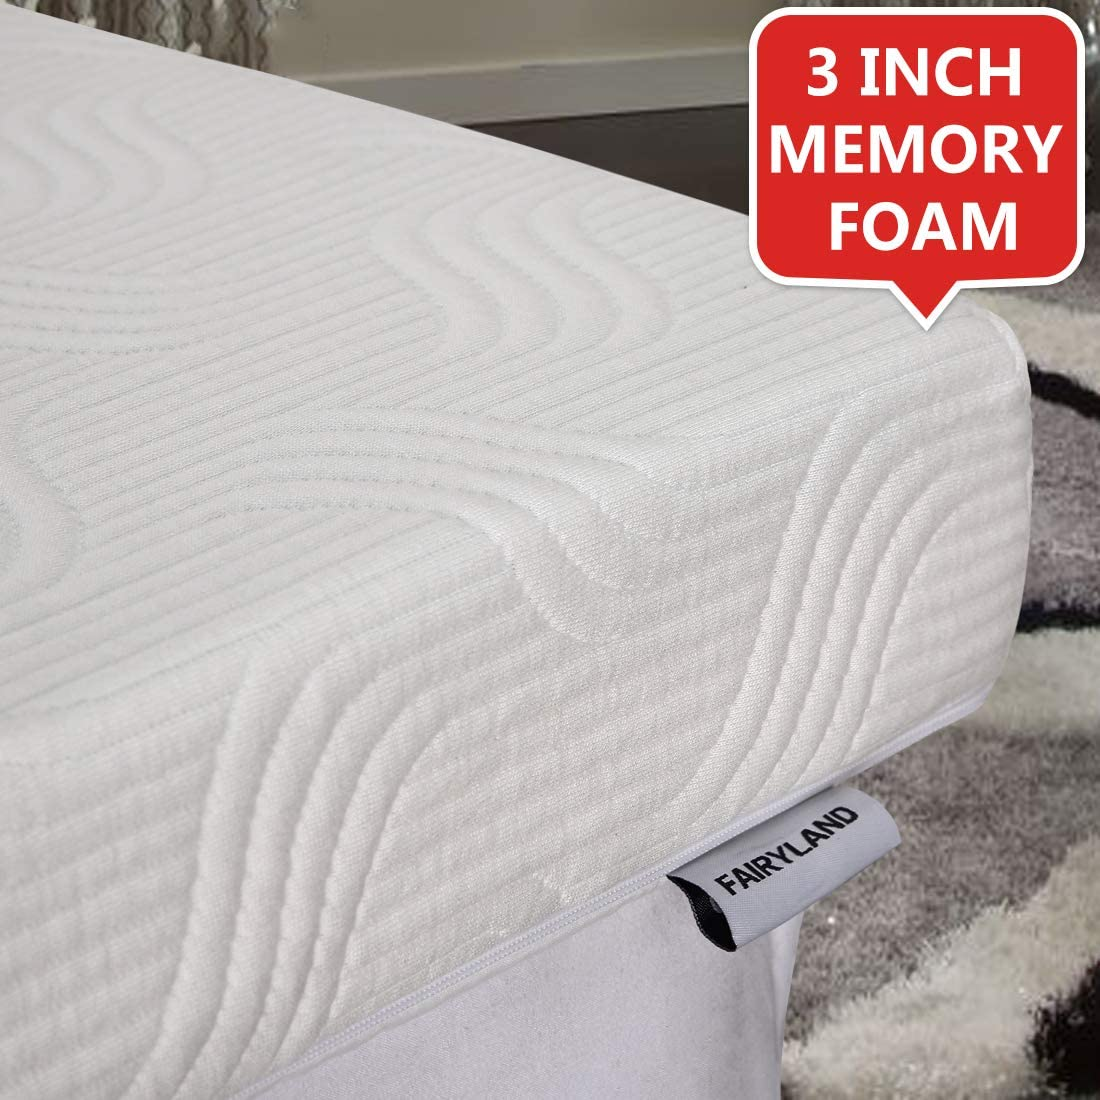 FAIRYLAND 3 Inch Memory Foam Mattress Topper Full Size, Cooling Relieving Mattress Pad for Bed with Bamboo Fiber Cover